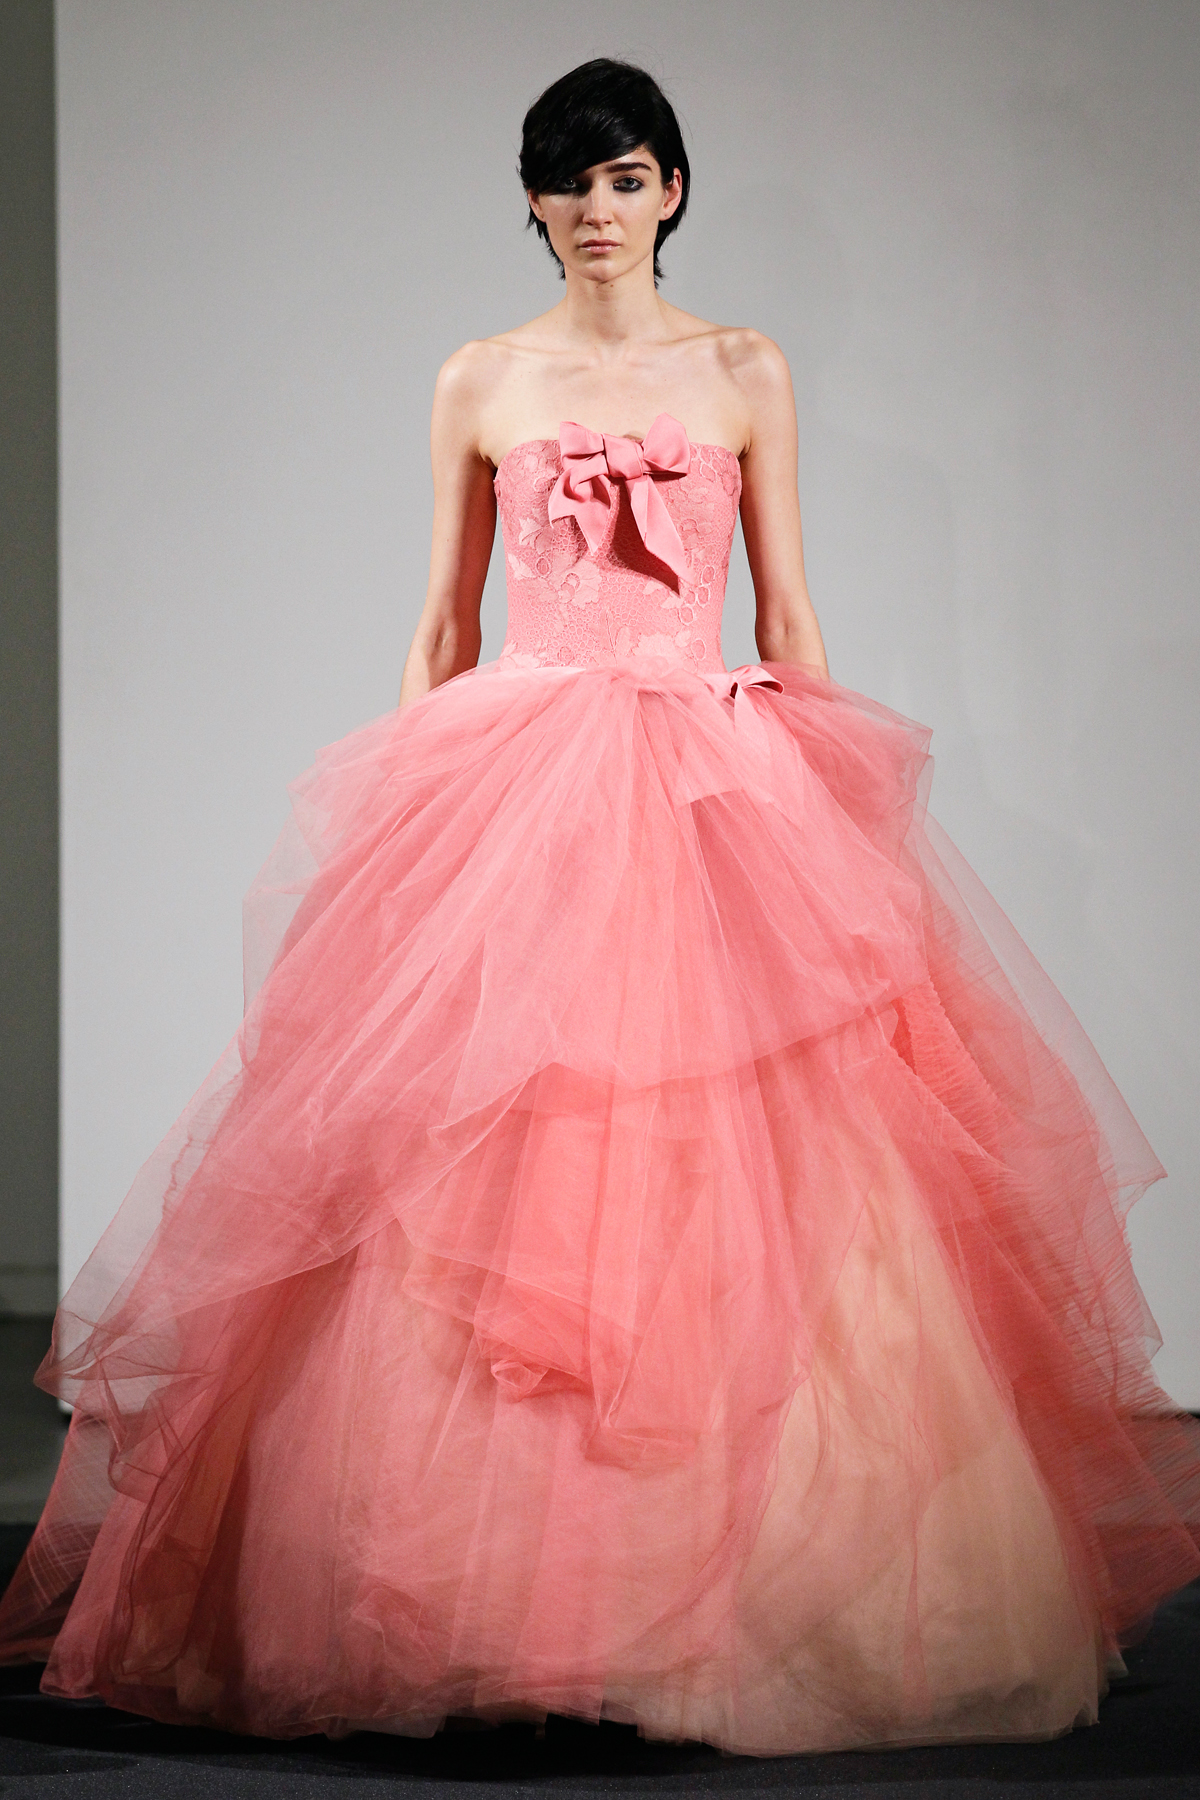 Vera Wang's Fall 2014 Bridal Collection Features All Pink Dresses ...